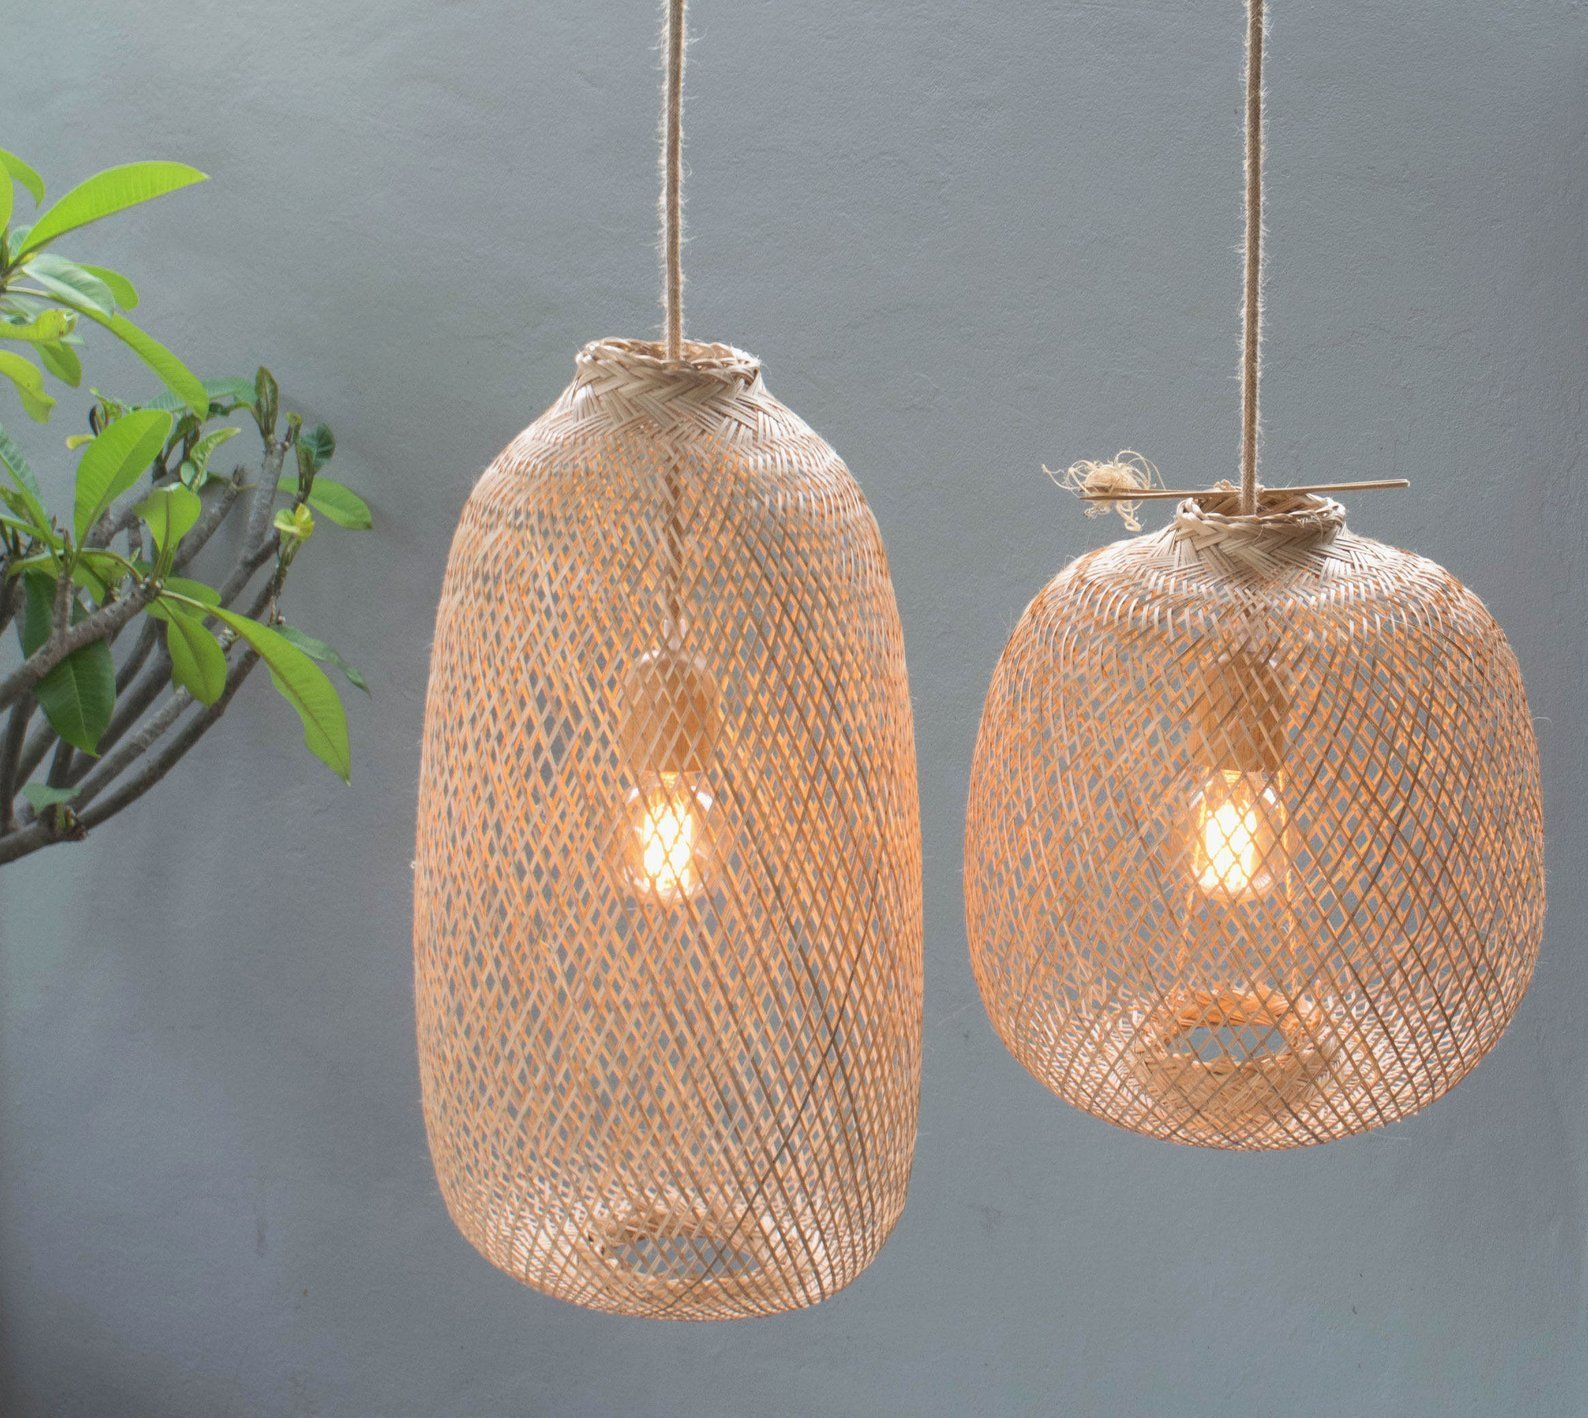 Basket Pendant Light Fixture Basket Pendant Light Fixture Design Ideas And Photos In 2020 Basket Lighting Unique Light Fixtures